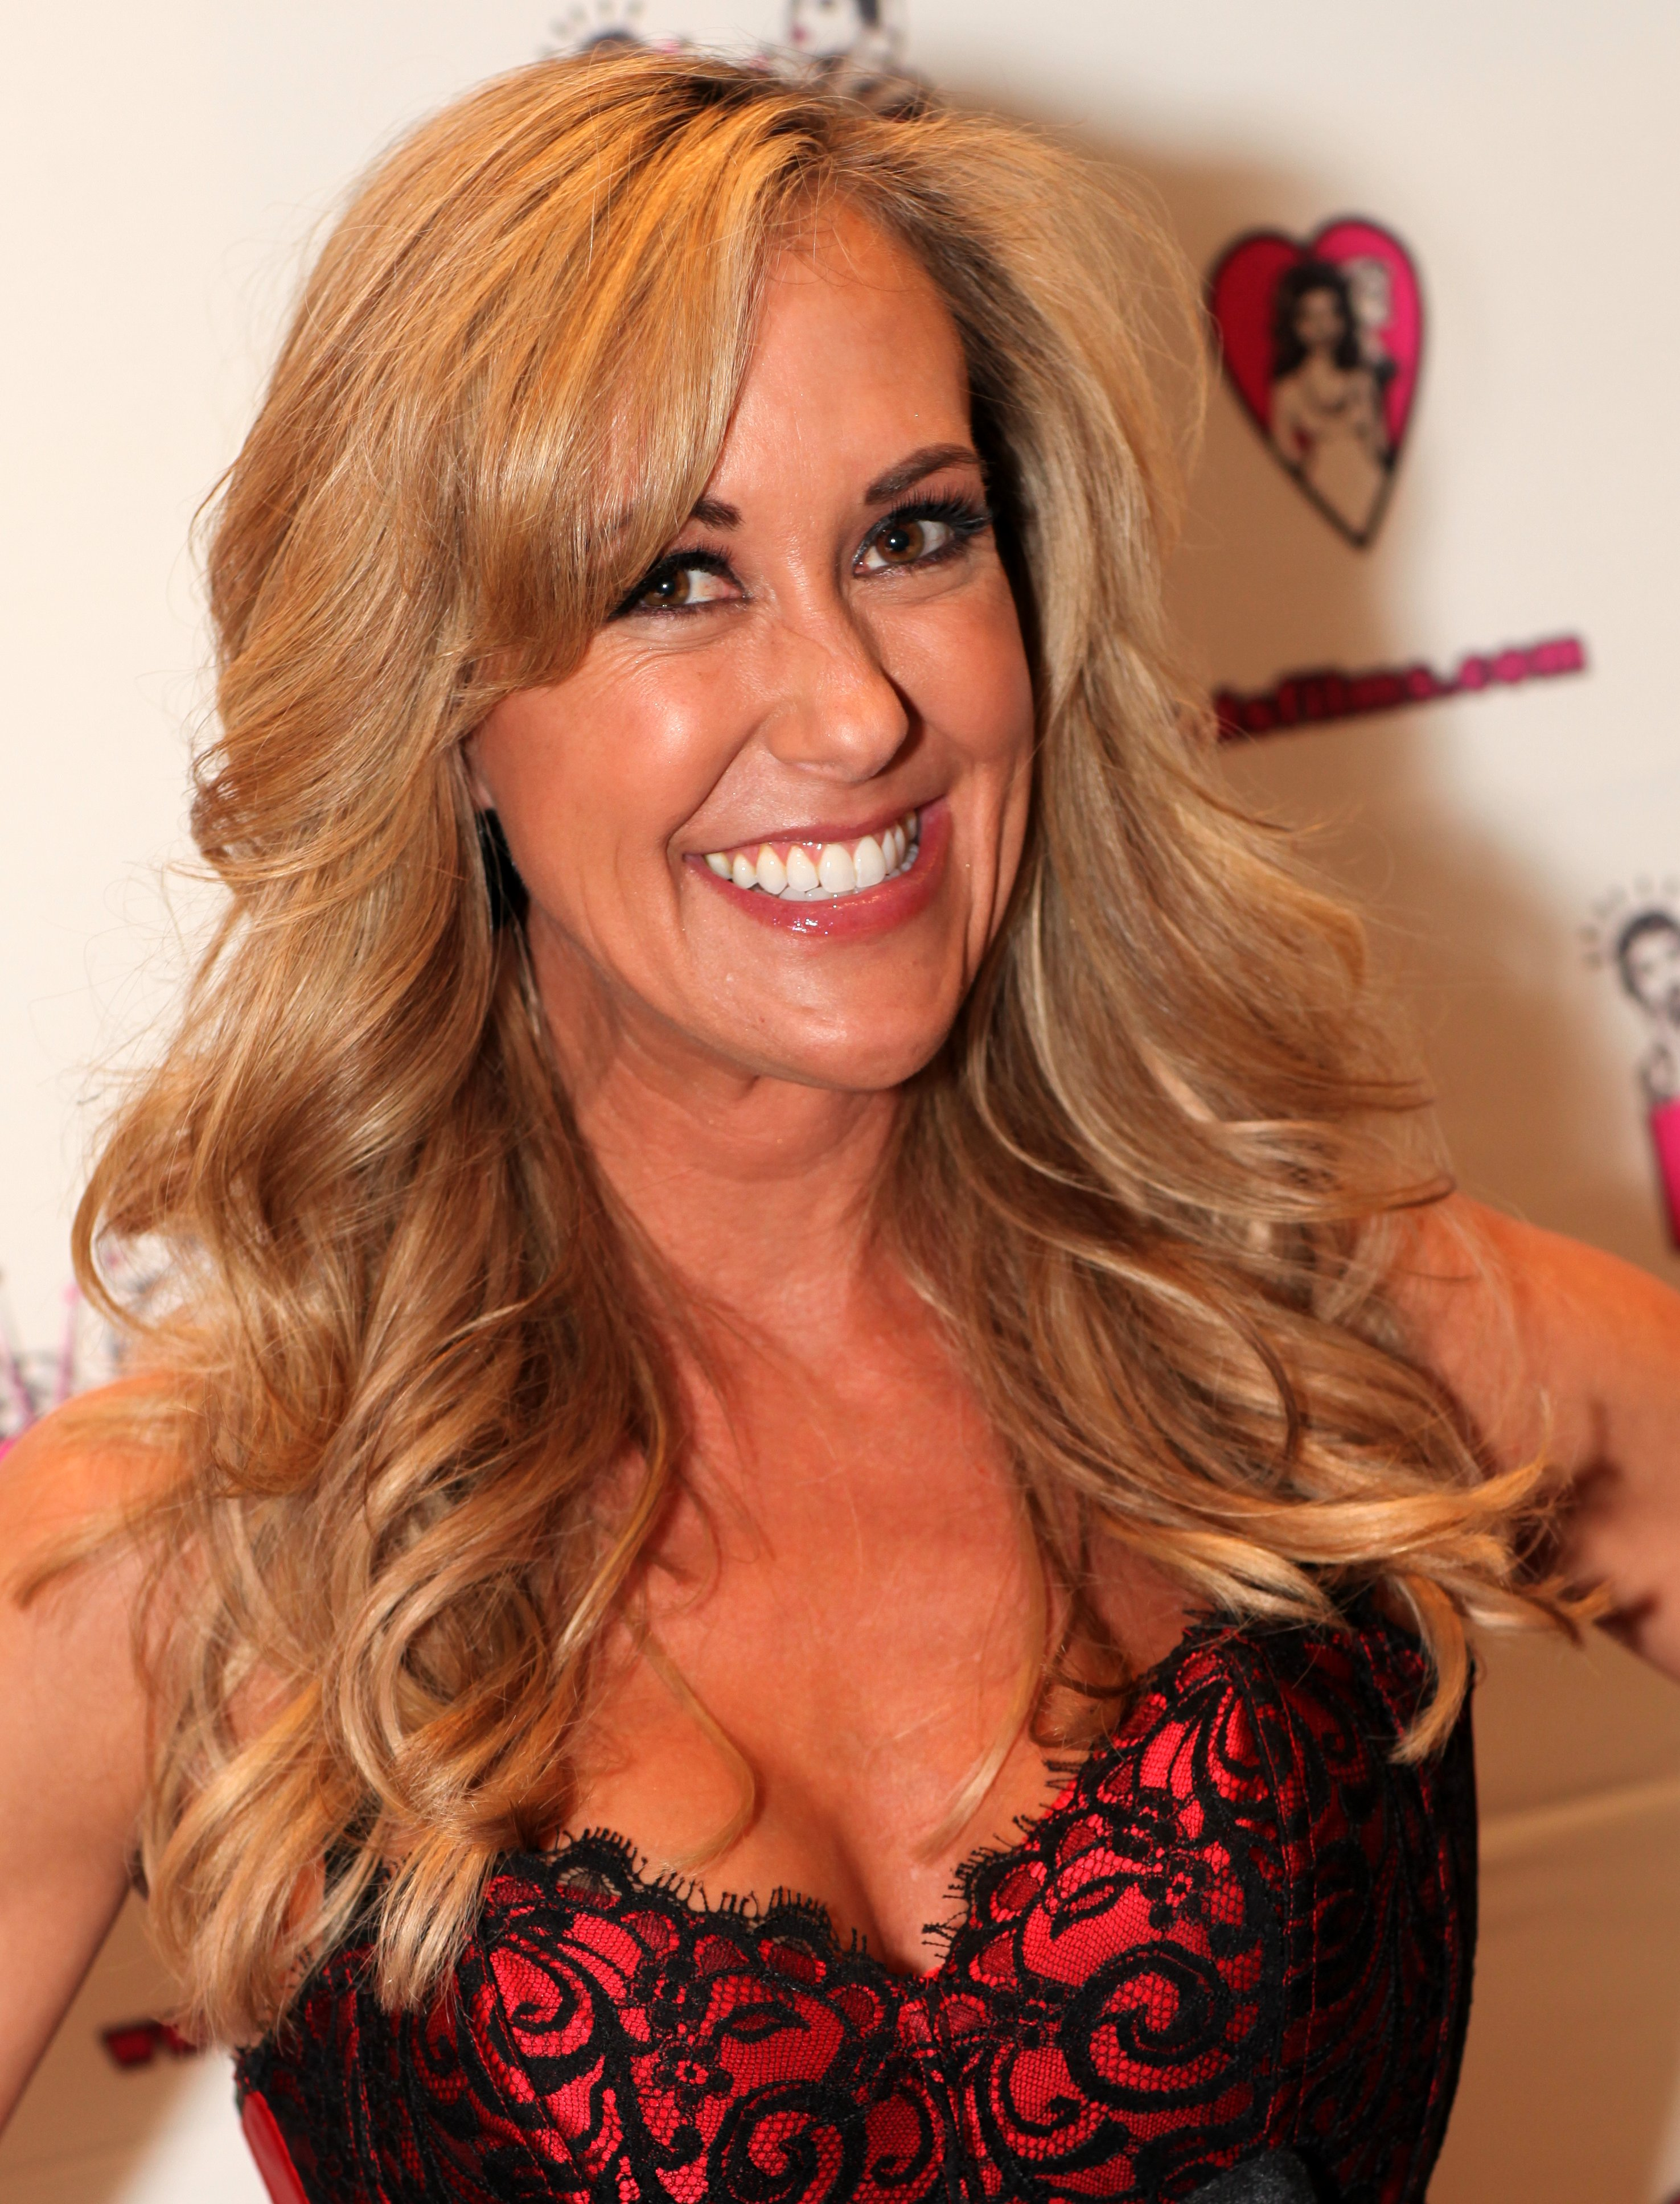 Brandi Love HD Wallpapers High Resolution and Quality Download